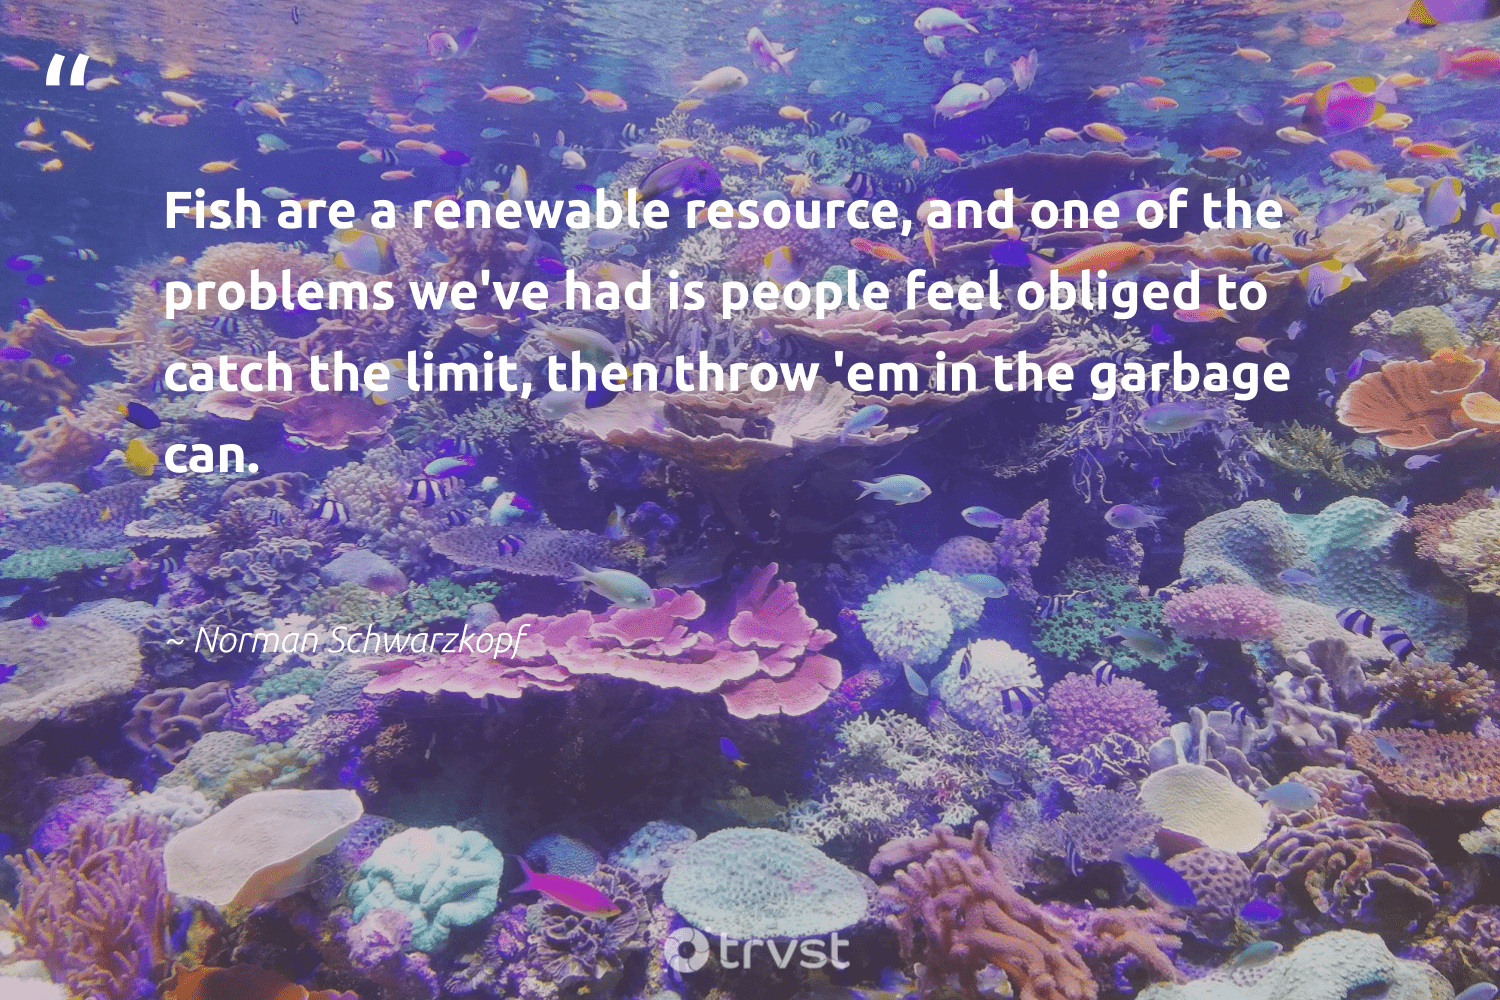 """""""Fish are a renewable resource, and one of the problems we've had is people feel obliged to catch the limit, then throw 'em in the garbage can.""""  - Norman Schwarzkopf #trvst #quotes #garbage #renewable #fish #lowcarbon #savetheoceans #climatechange #collectiveaction #cleanenergy #perfectnature #sustainability"""